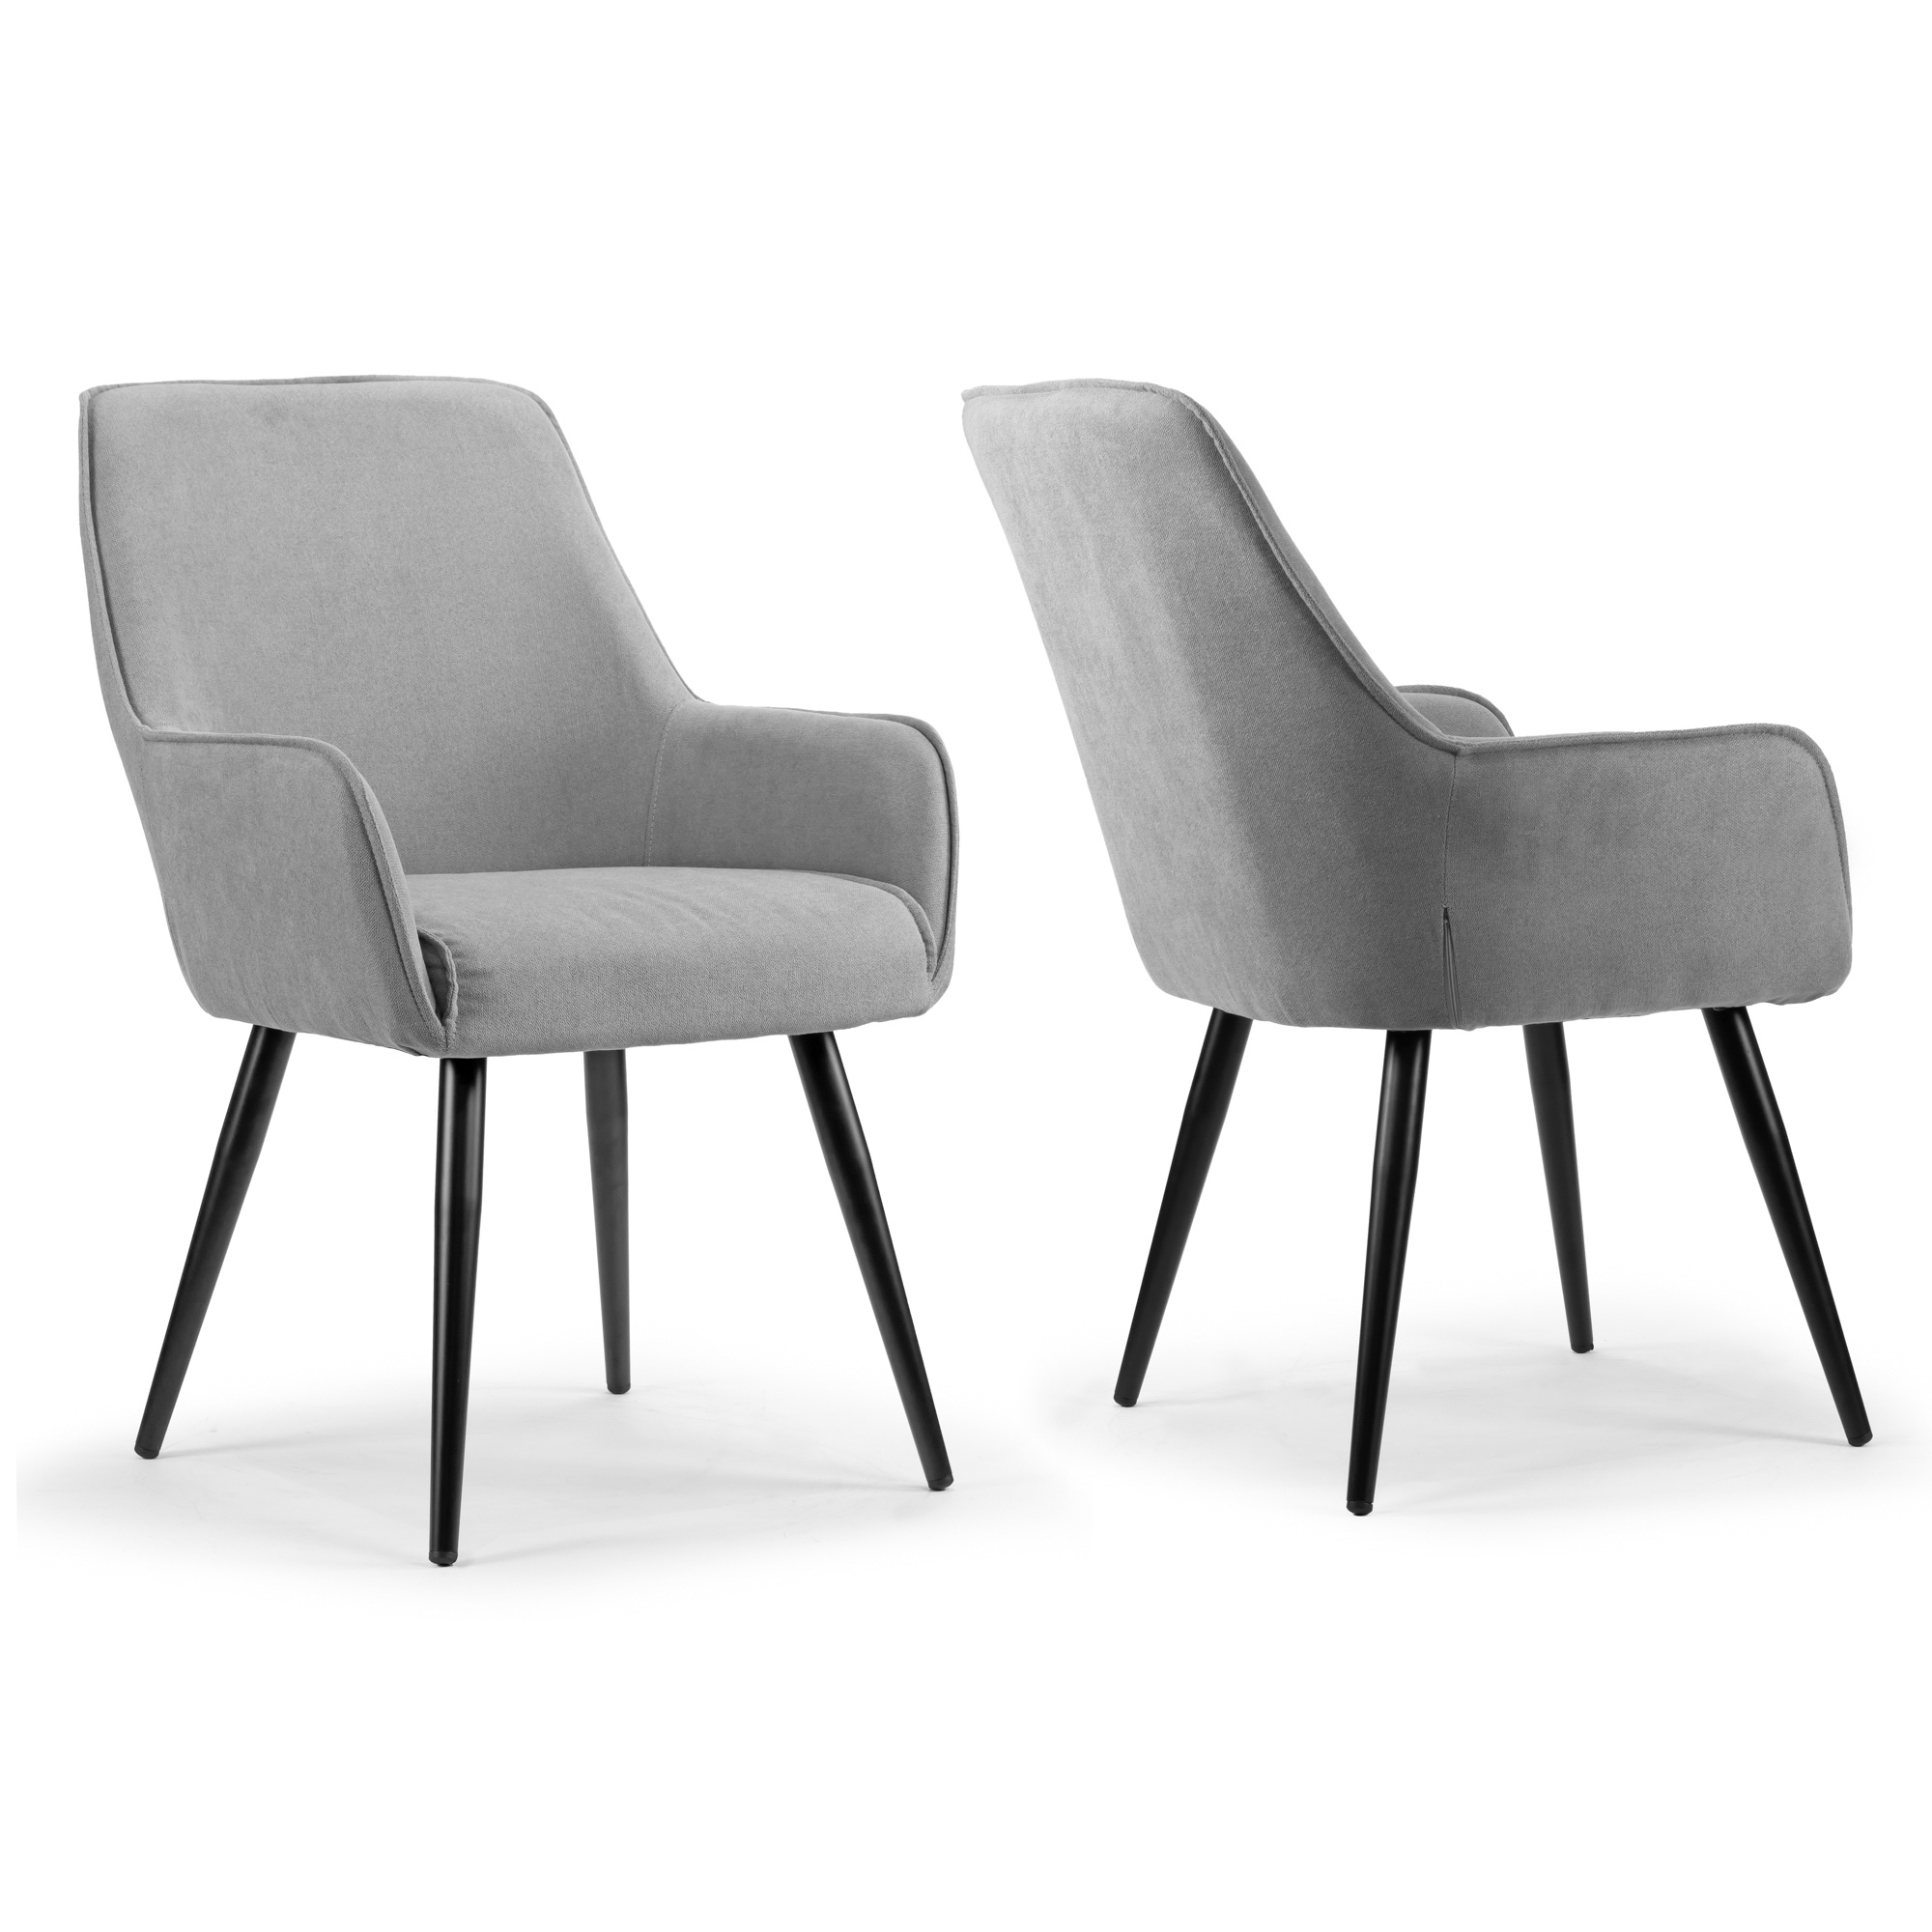 Set Of 2 Amir Grey Dining Chair With Black Metal Legs And Square Arms Overstock 24039542